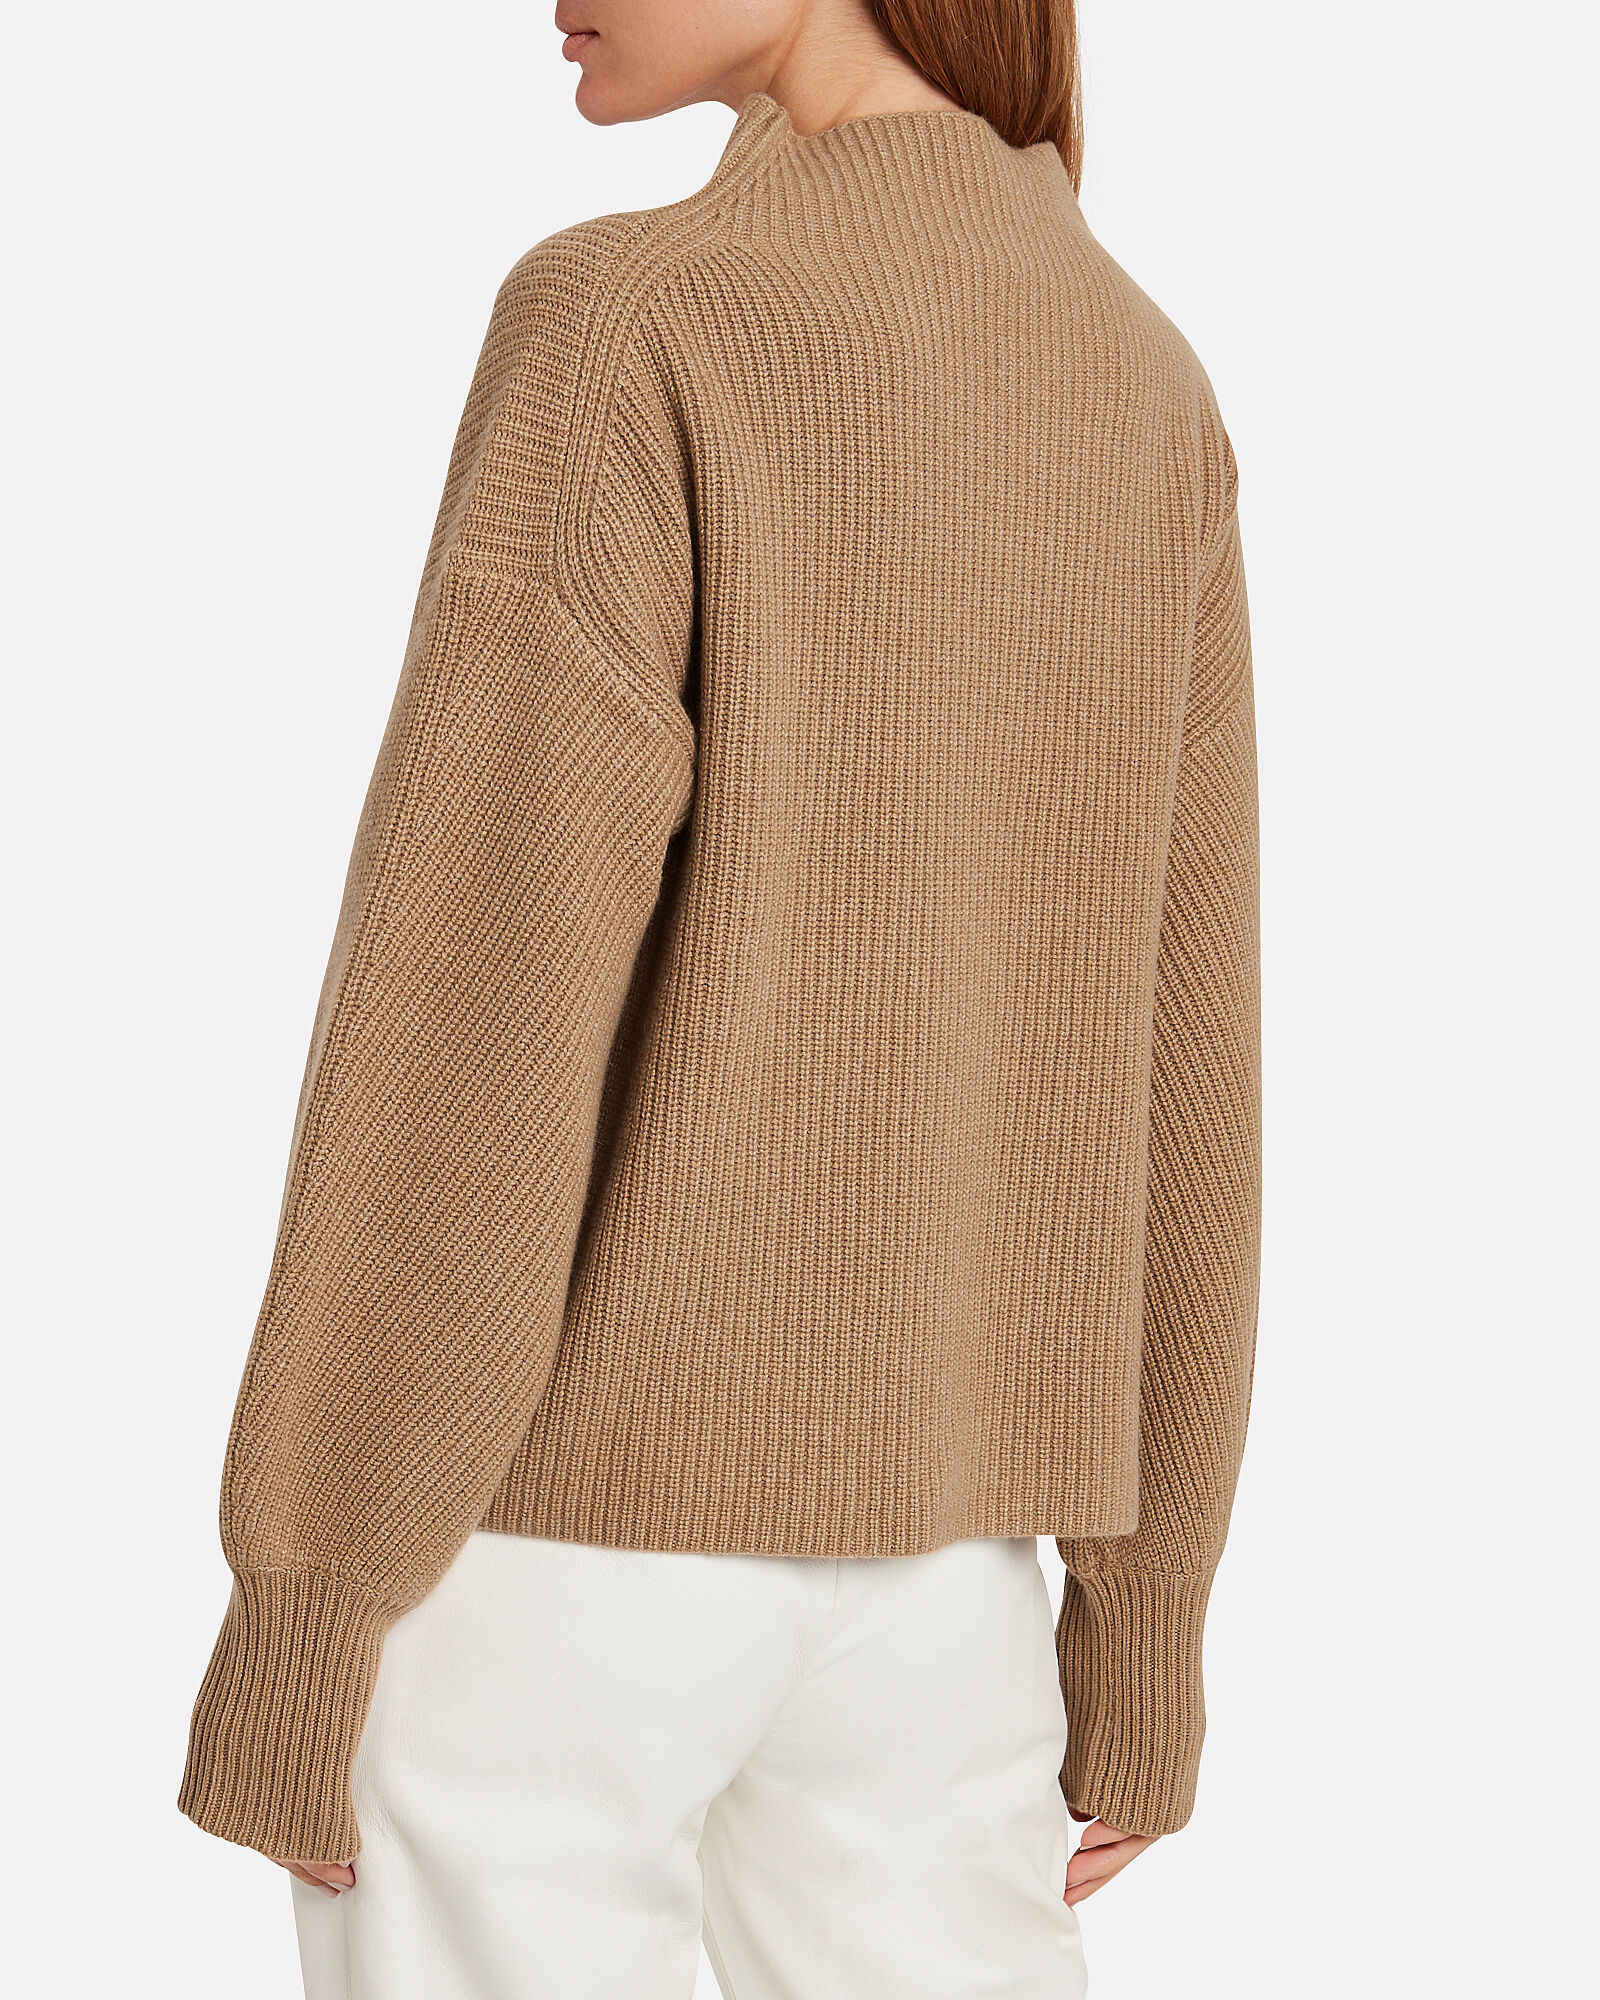 Helena Wool-Cashmere Ribbed Sweater, CAMEL, hi-res